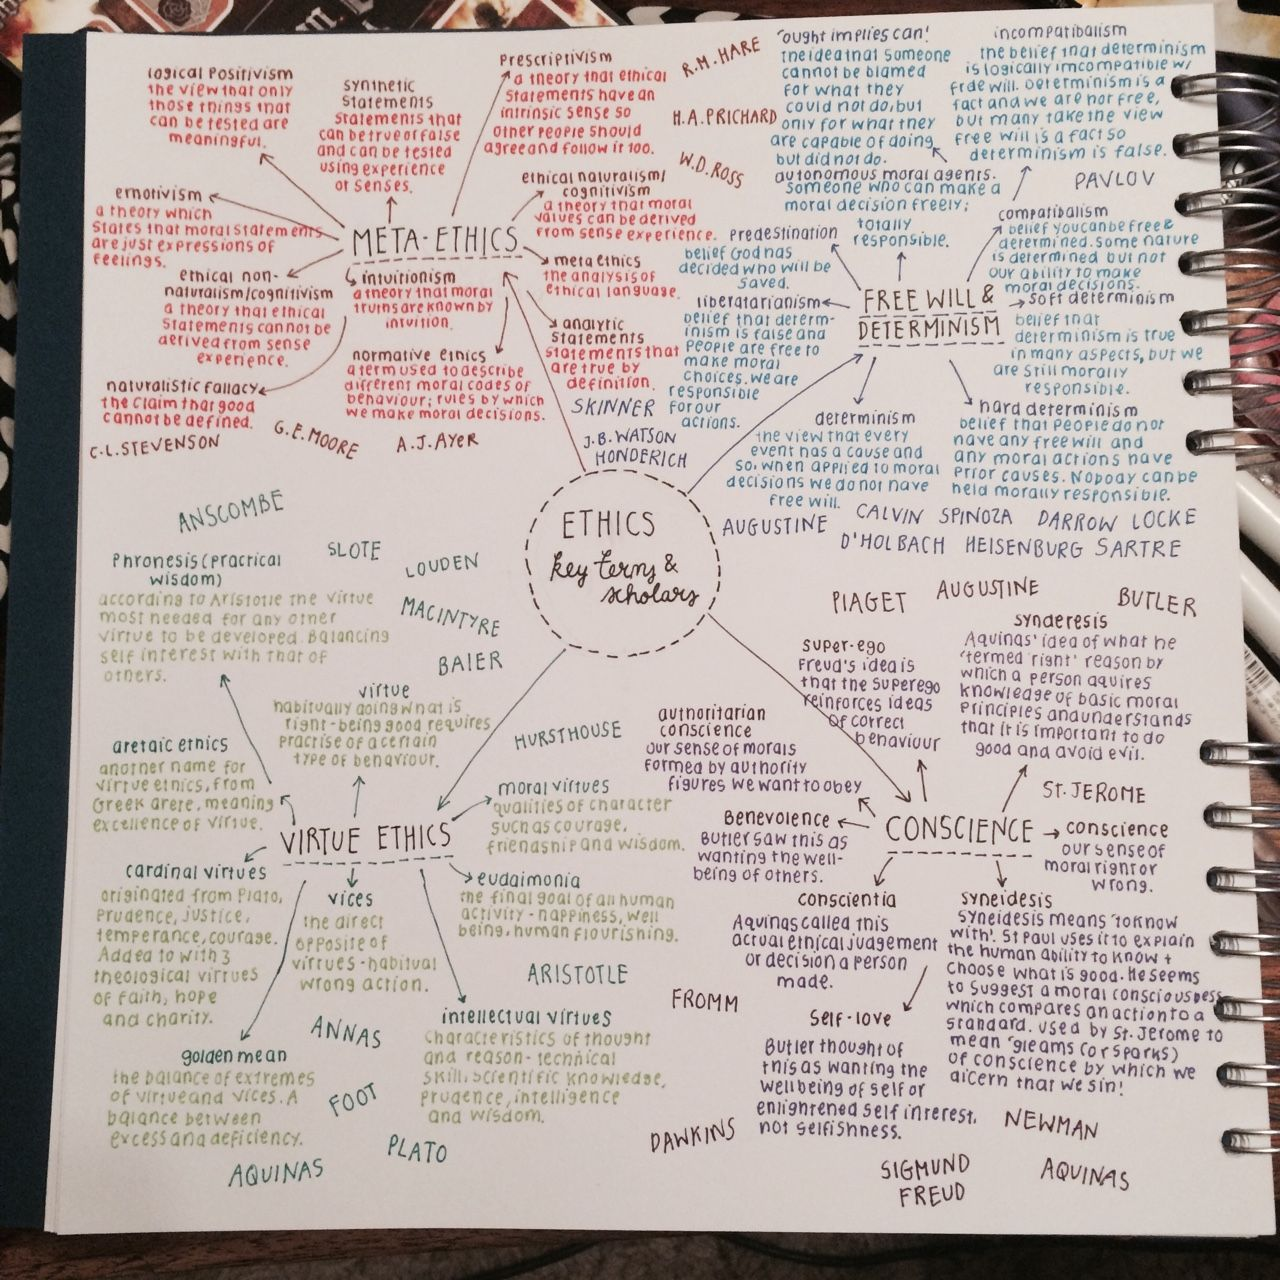 30 2015 half the mind map i ve done for a2 ethics topics it 30 2015 half the mind map i ve done for a2 ethics